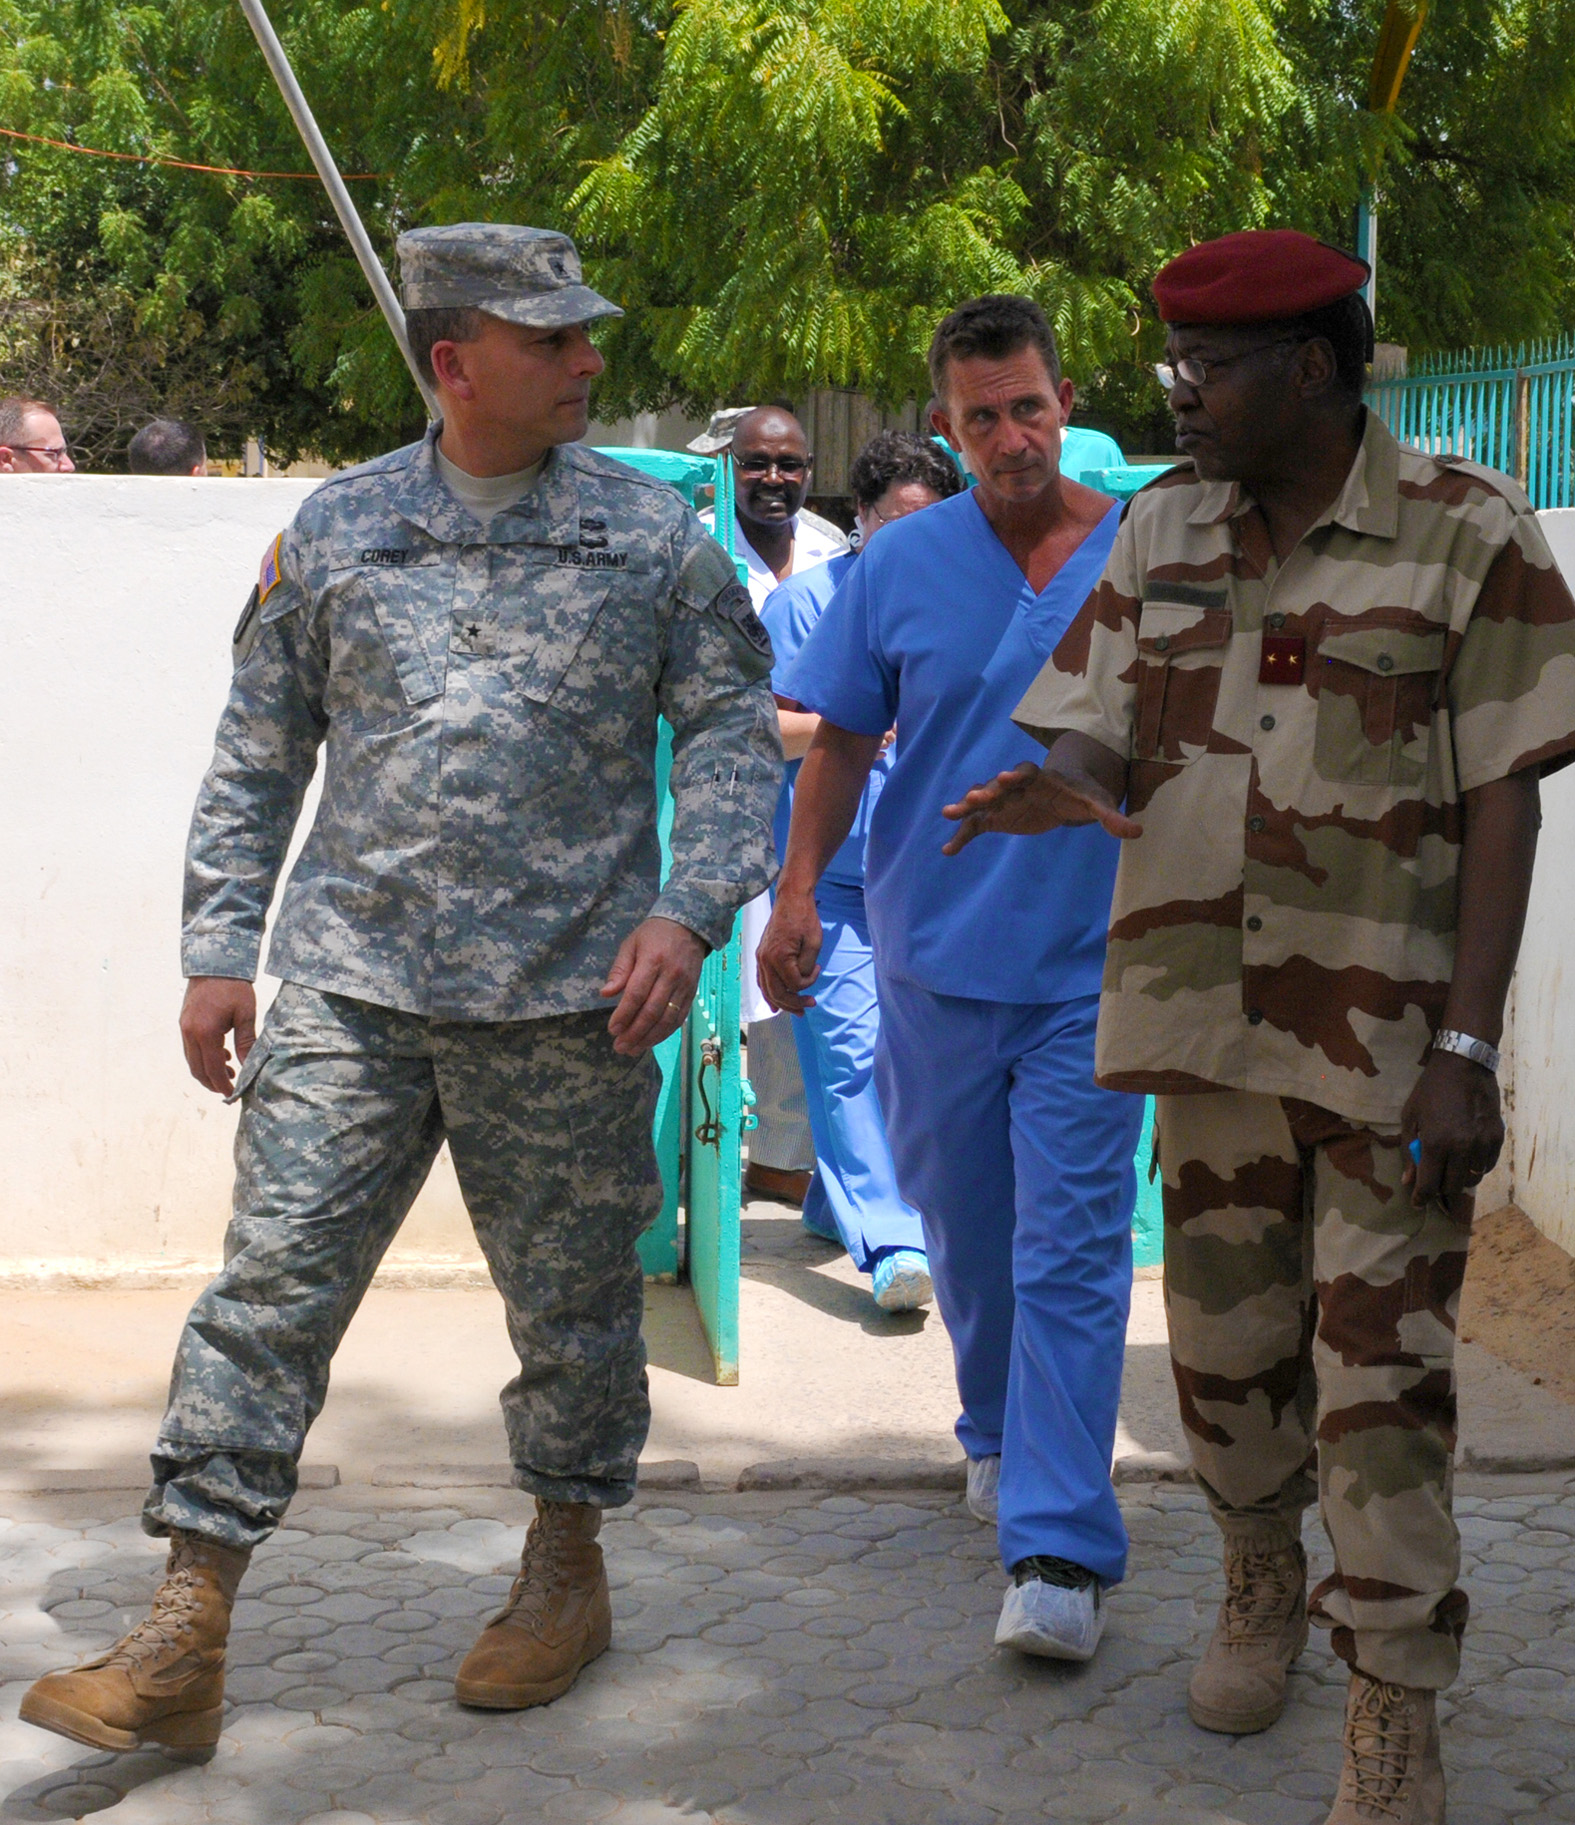 Brig. Gen. Peter Corey (left), the deputy commanding general of U.S. Army Africa, takes a tour of the Hospital Militaire D'Instruction with Chadian Army Brig. Gen. Djetodjide Tetimian (right), the commander of the facility, April 23, 2015. While at HMI, Corey visited the labs, patient wards, and operating rooms. He also observed a surgery and checked in with the U.S. Army Soldiers participating in Medical Readiness and Training Exercise 15-3. The Soldiers have been in Chad for nearly two weeks working alongside Chadian hospital staff conducting consultations with patients, performing and assisting in surgeries, and assessing and treating trauma patients. (U.S. Army Africa photo by Staff Sgt. Andrea Merritt)